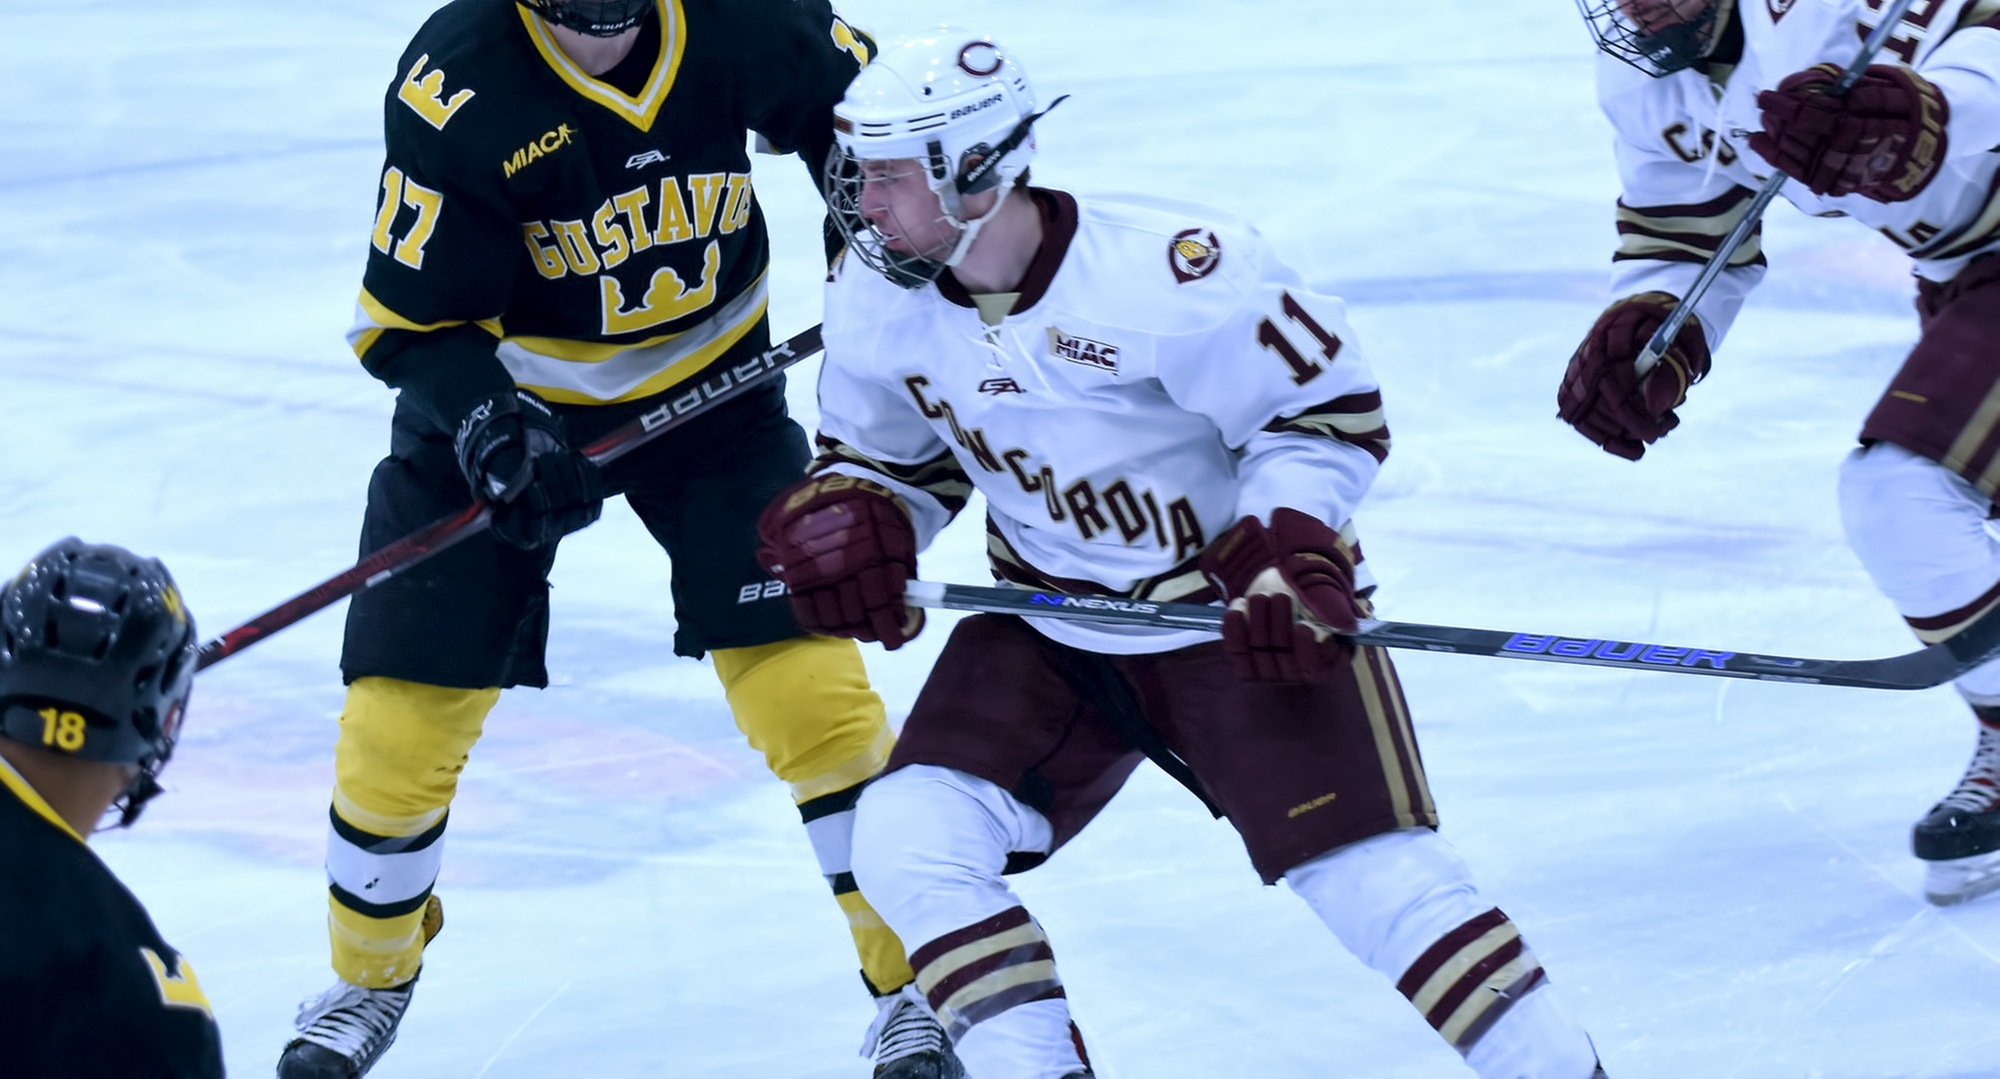 Sophomore Jacen Bracko scored the Cobbers' second goal in the series finale at Gustavus. Bracko now has 10 points on the year and is one of four CC players with a double-digit point total.